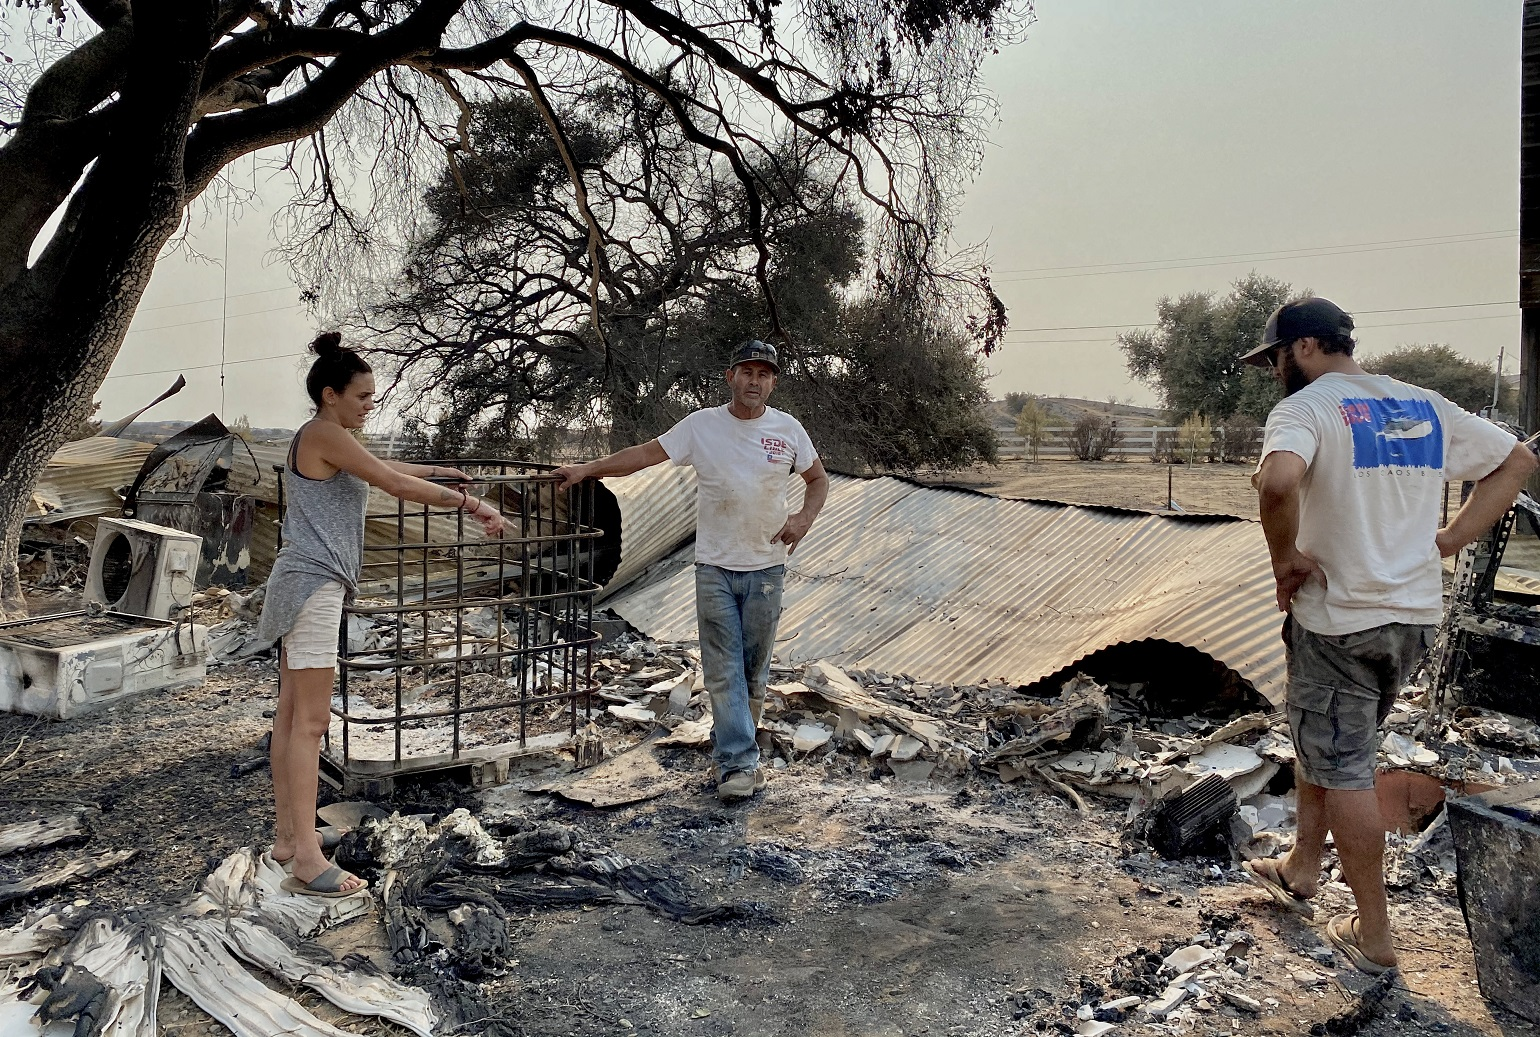 FEMA Opening Temporary Mobile Registration Center in El Cajon to Help Valley Fire Victims